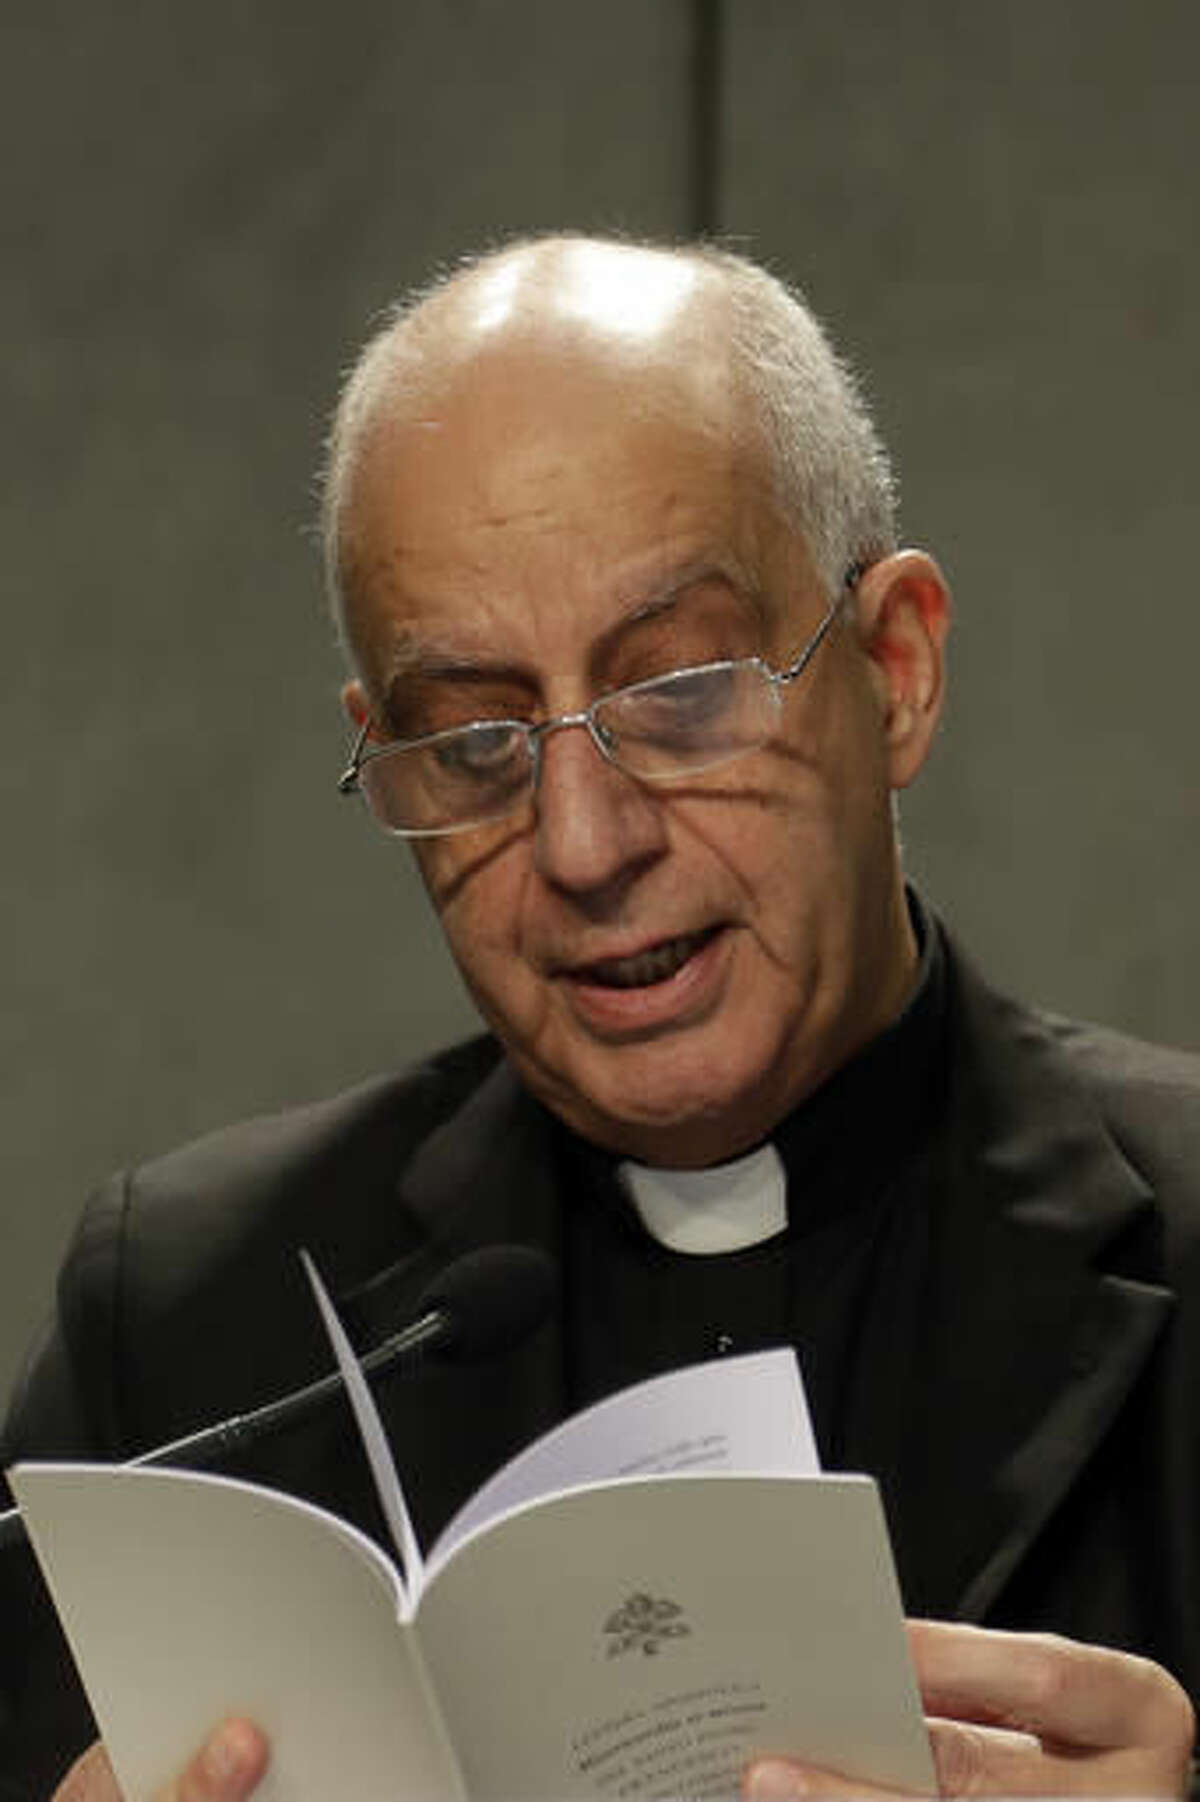 Monsignor Rino Fisichella reads an Apostolic Letter by Pope Francis during a press conference at the Vatican, Monday, Nov. 21, 2016. Declaring no sin beyond the reach of God's mercy, Pope Francis is allowing all priests to absolve women of the